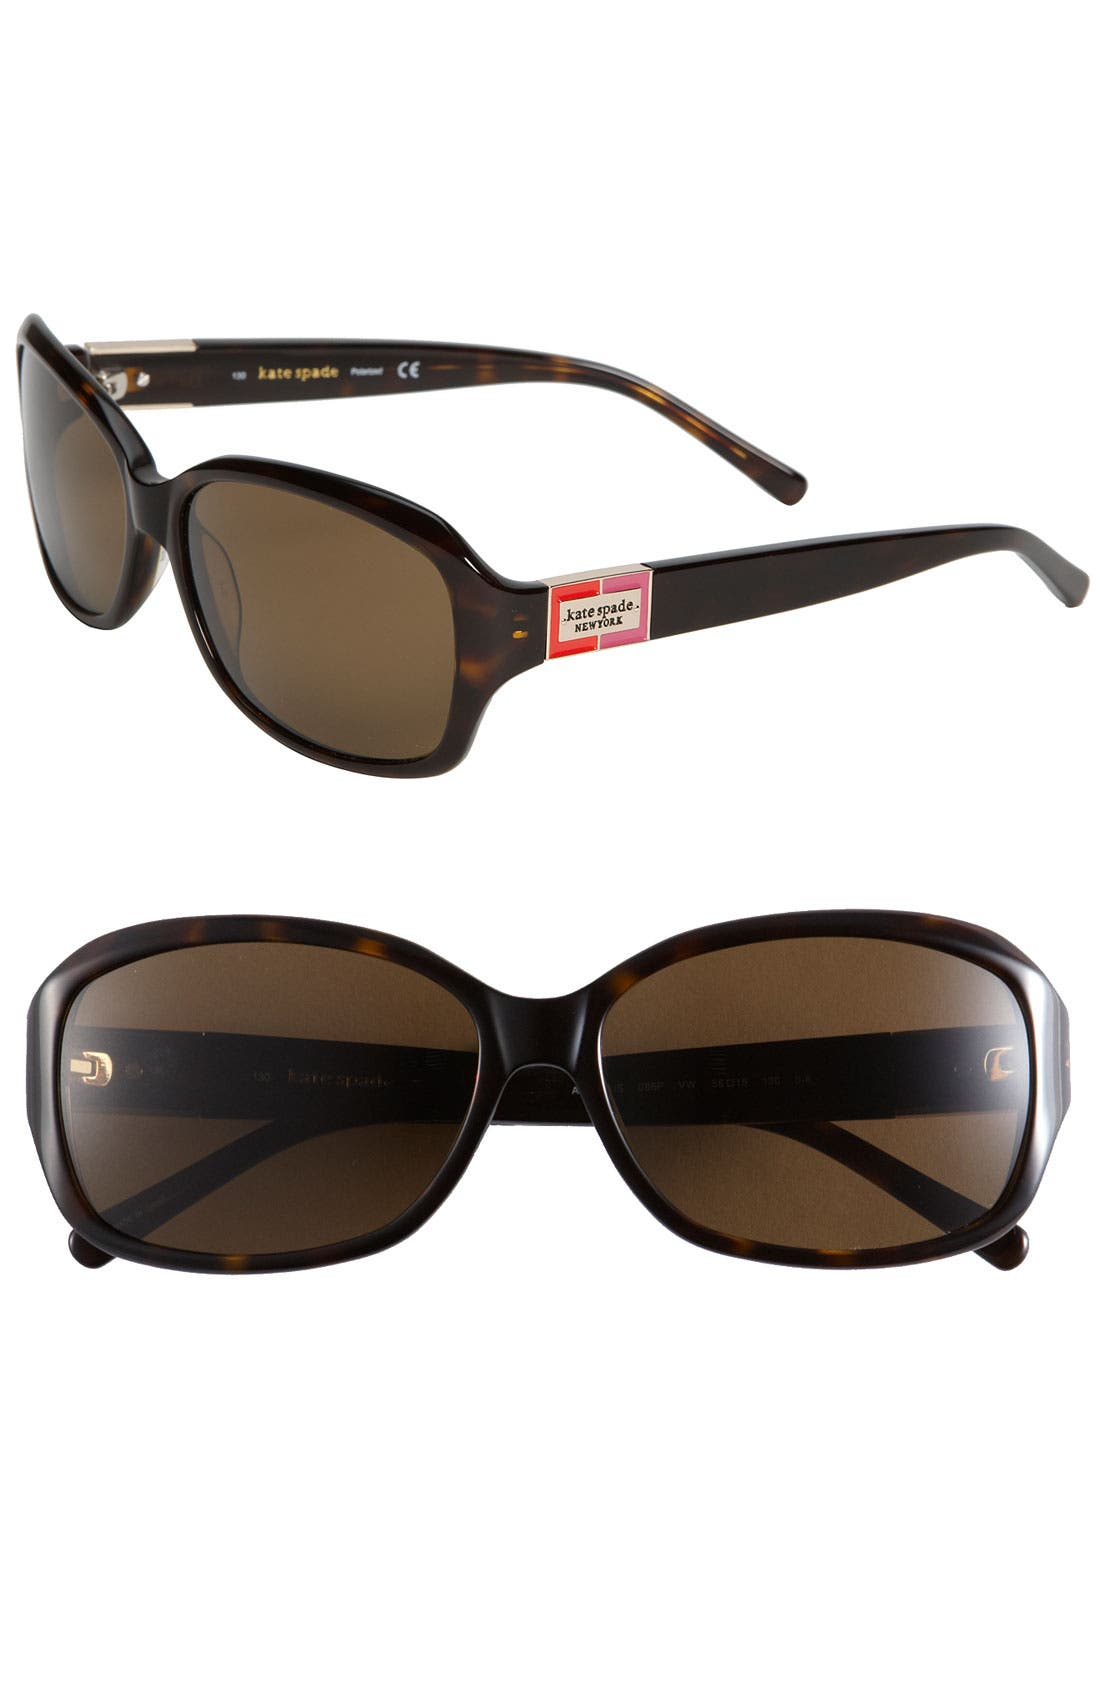 Alternate Image 1 Selected - kate spade new york 'annika' 56mm polarized rectangular sunglasses